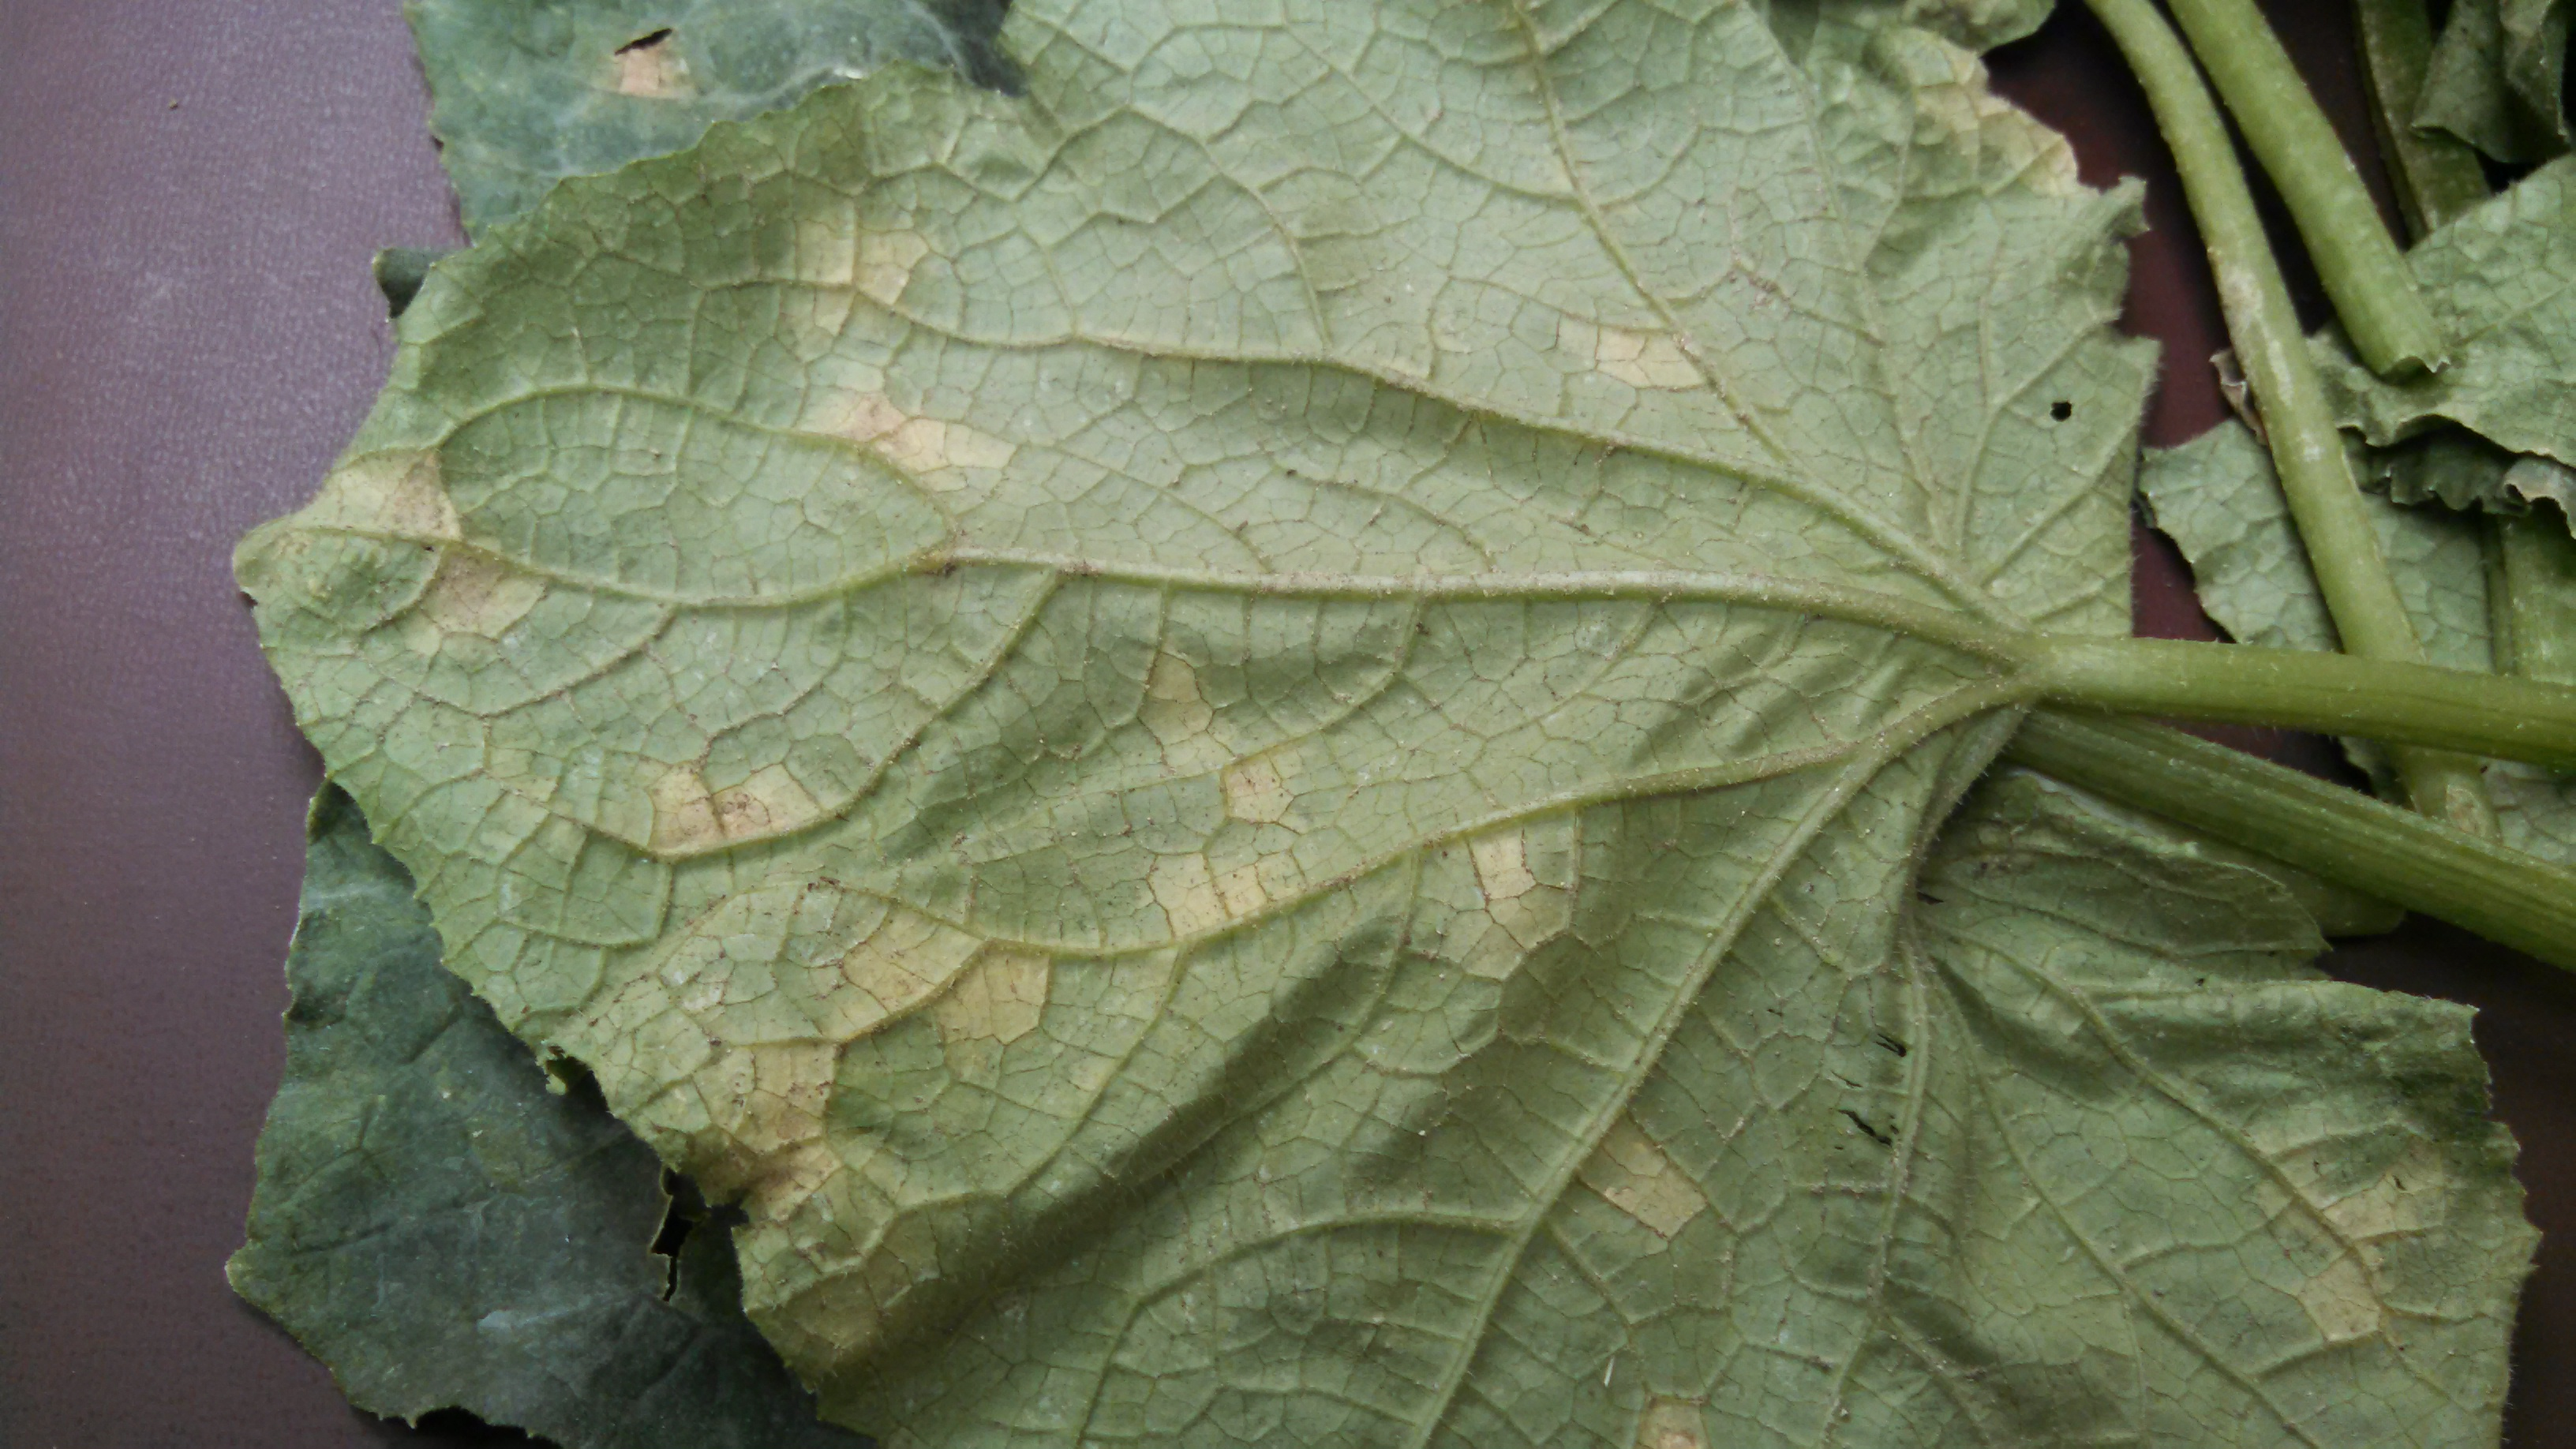 Figure 1: abaxial side of a cucumber leaf showing downy mildew sporulation (Charles Mitchell, N.C. Cooperative Extension)